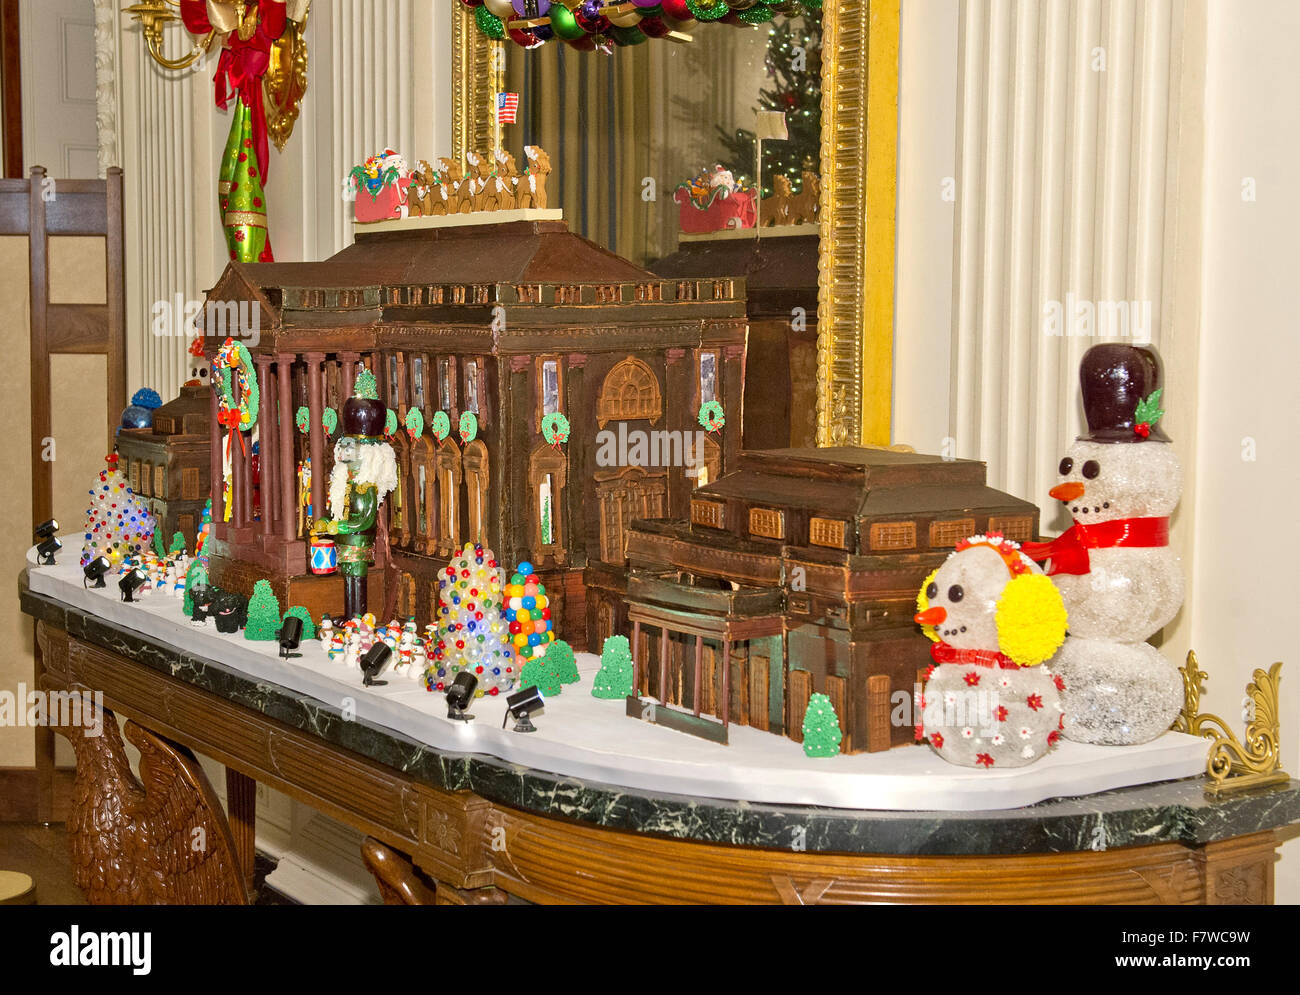 Washington dc usa 2nd december 2015 the traditional white house the traditional white house gingerbread house in the state dining room on the state floor as part of the 2015 white house christmas theme a timeless dzzzfo